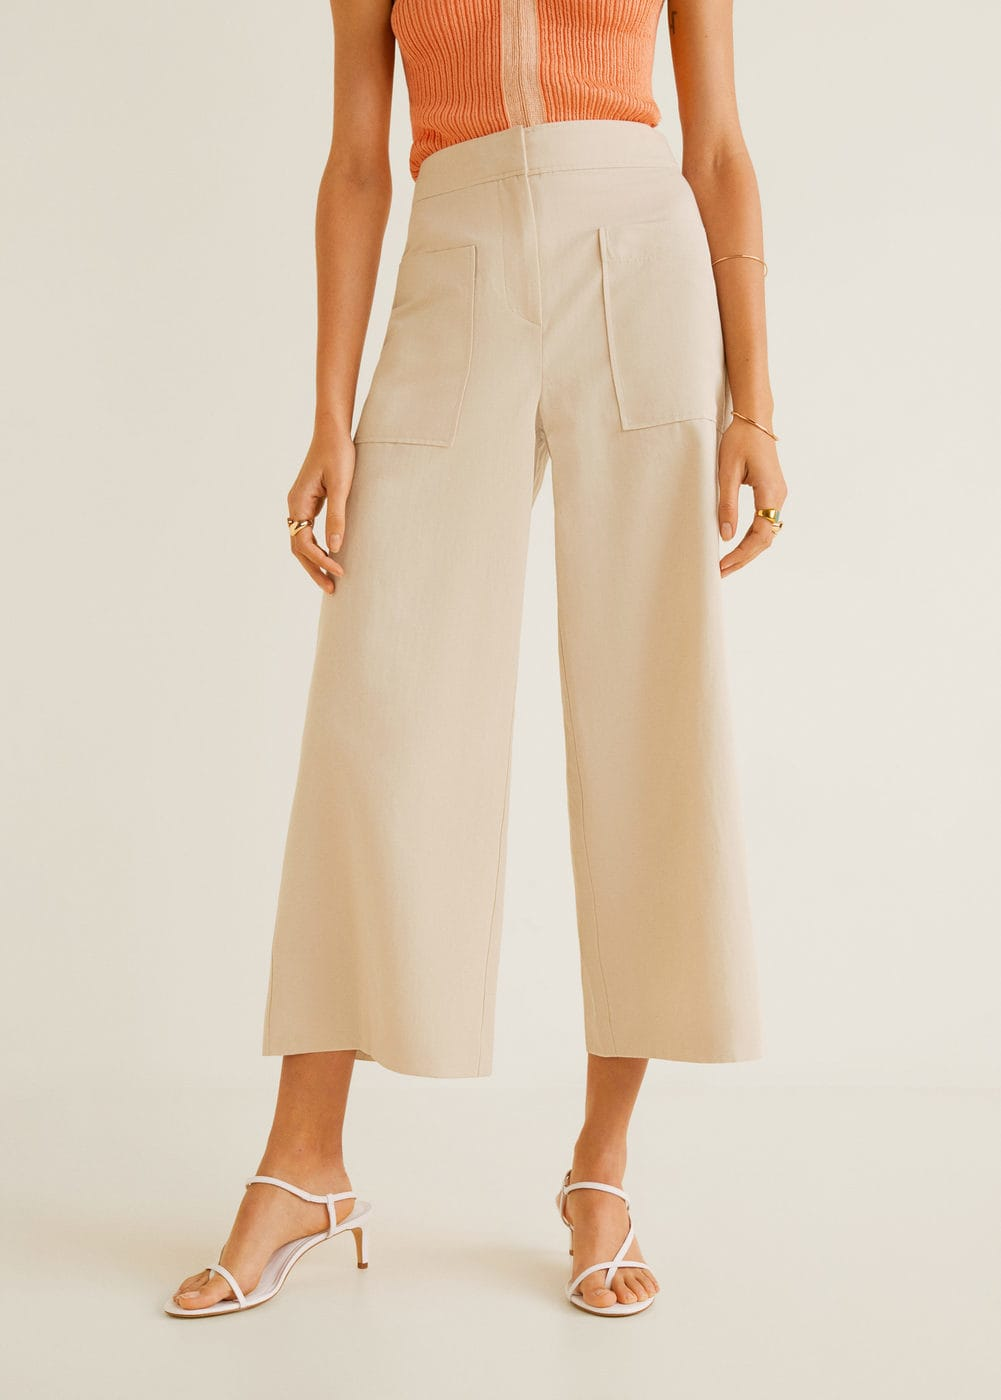 Pocket linen-blend trousers - Women | Mango United Kingdom